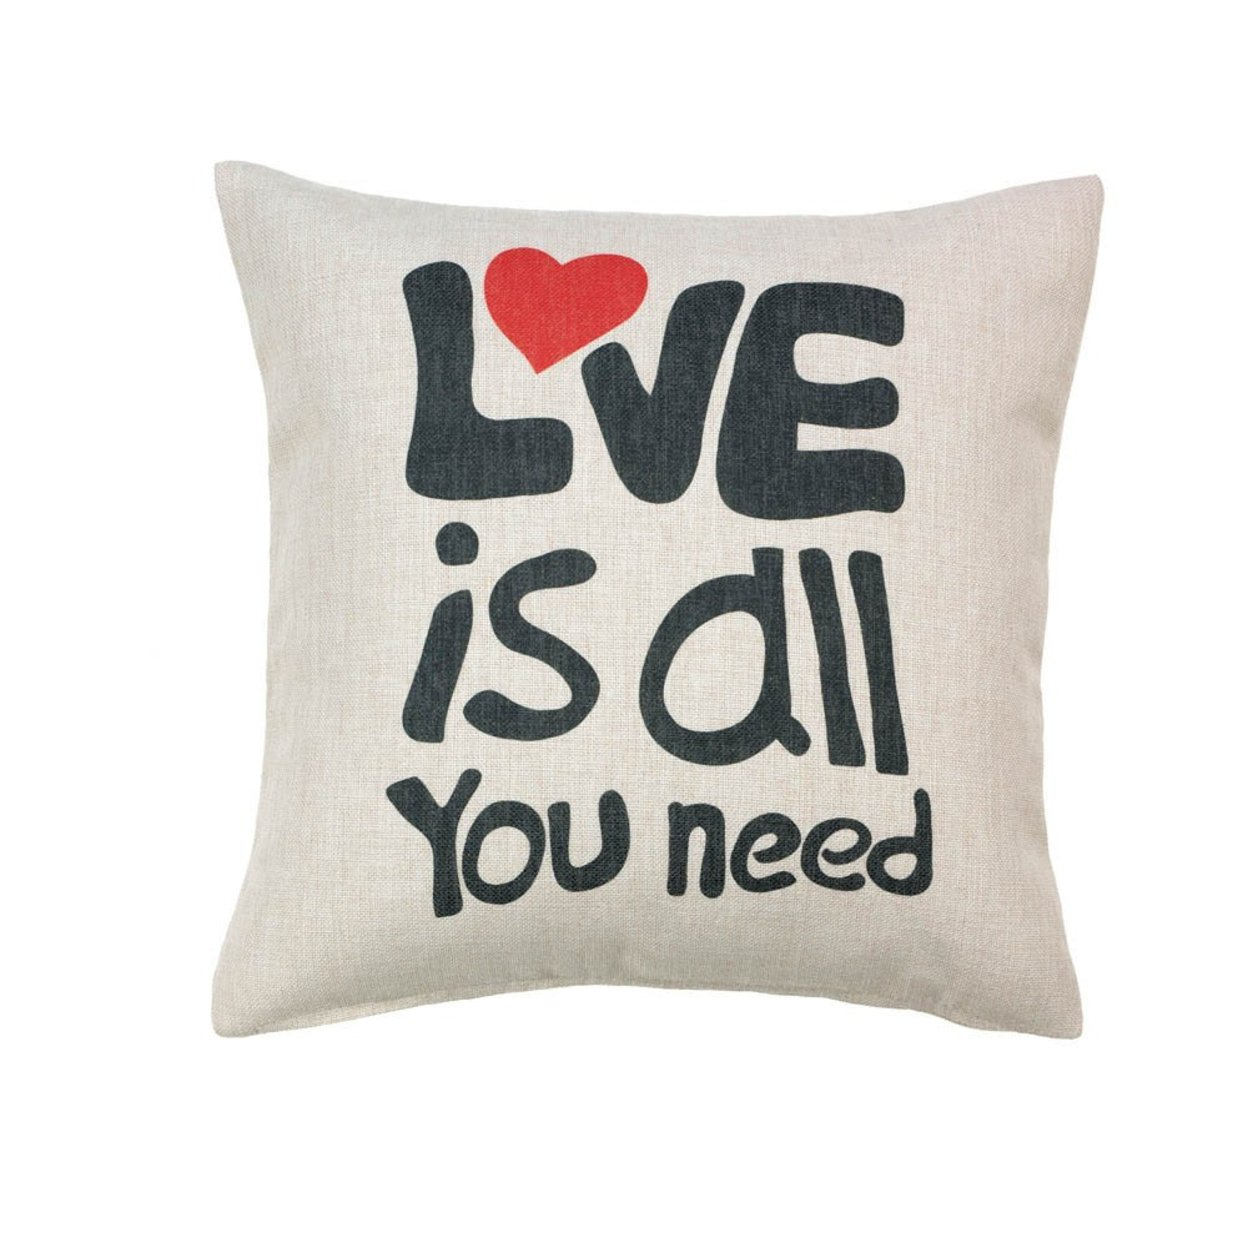 Love Is All You Need Pillow 567d87f3a3771c944d8beedf